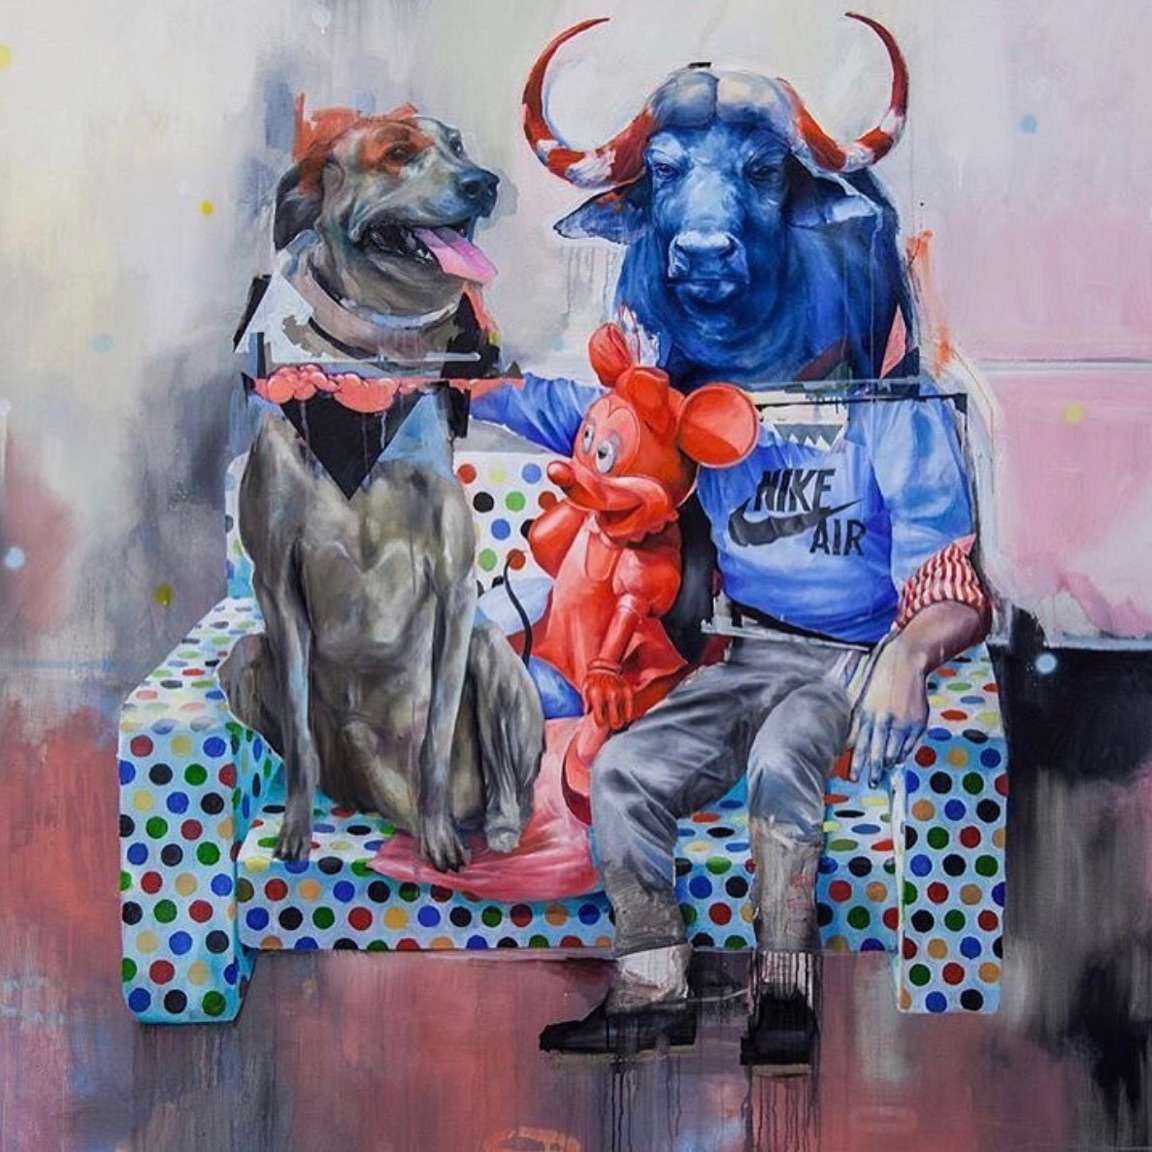 Treason Gallery_Joram Roukes-4.jpeg